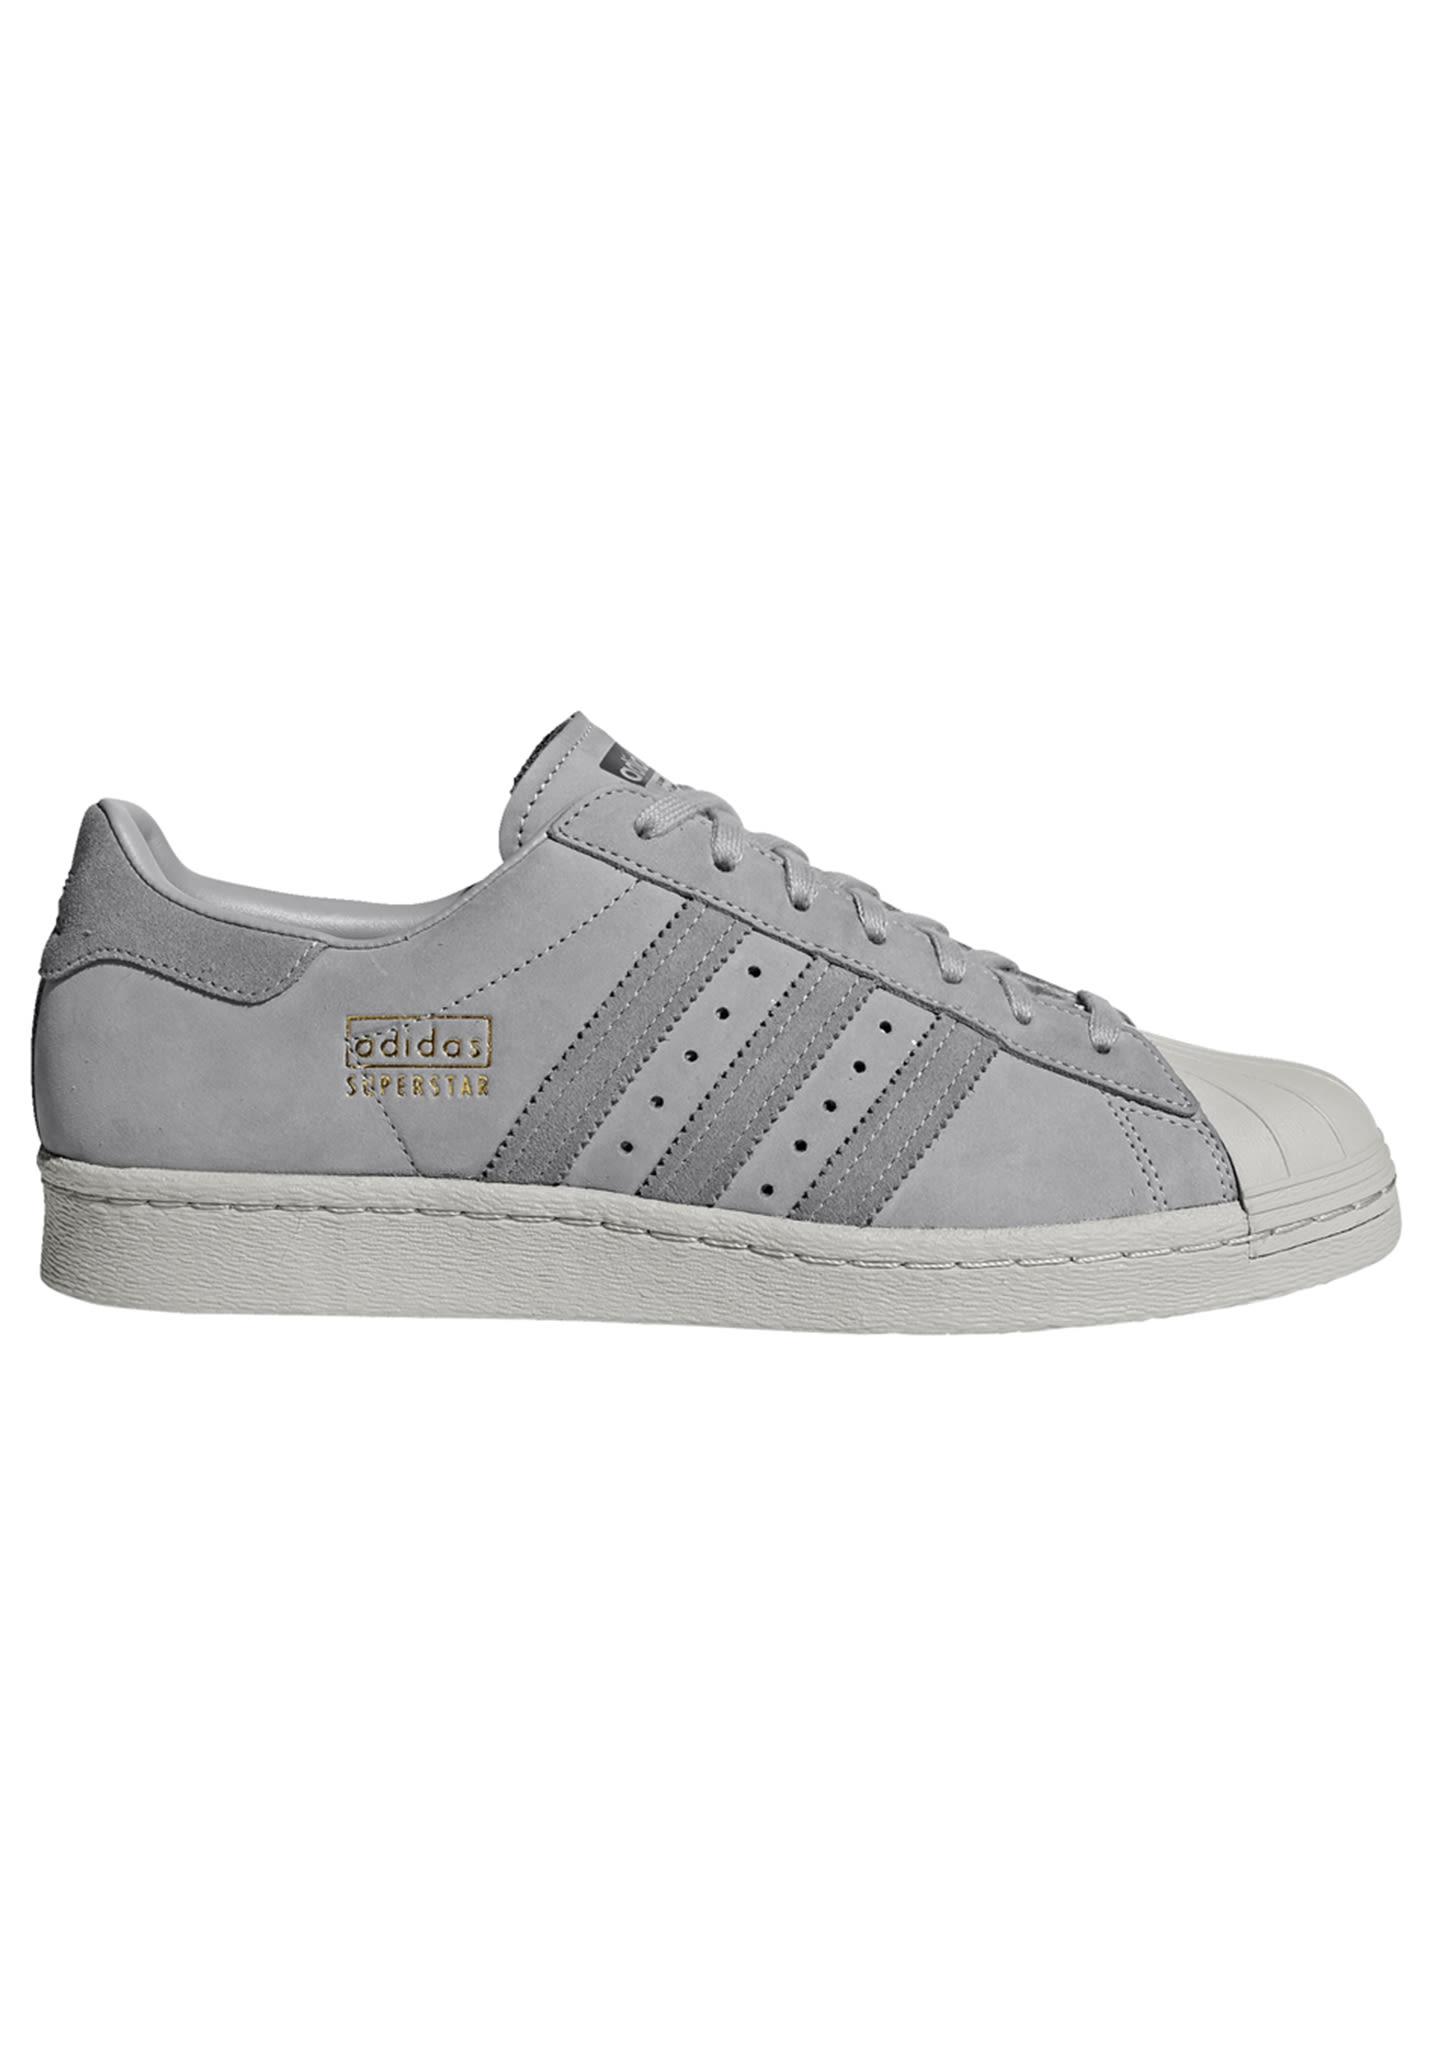 74351829a7b ADIDAS ORIGINALS Superstar 80S - Sneakers - Grijs - Planet Sports